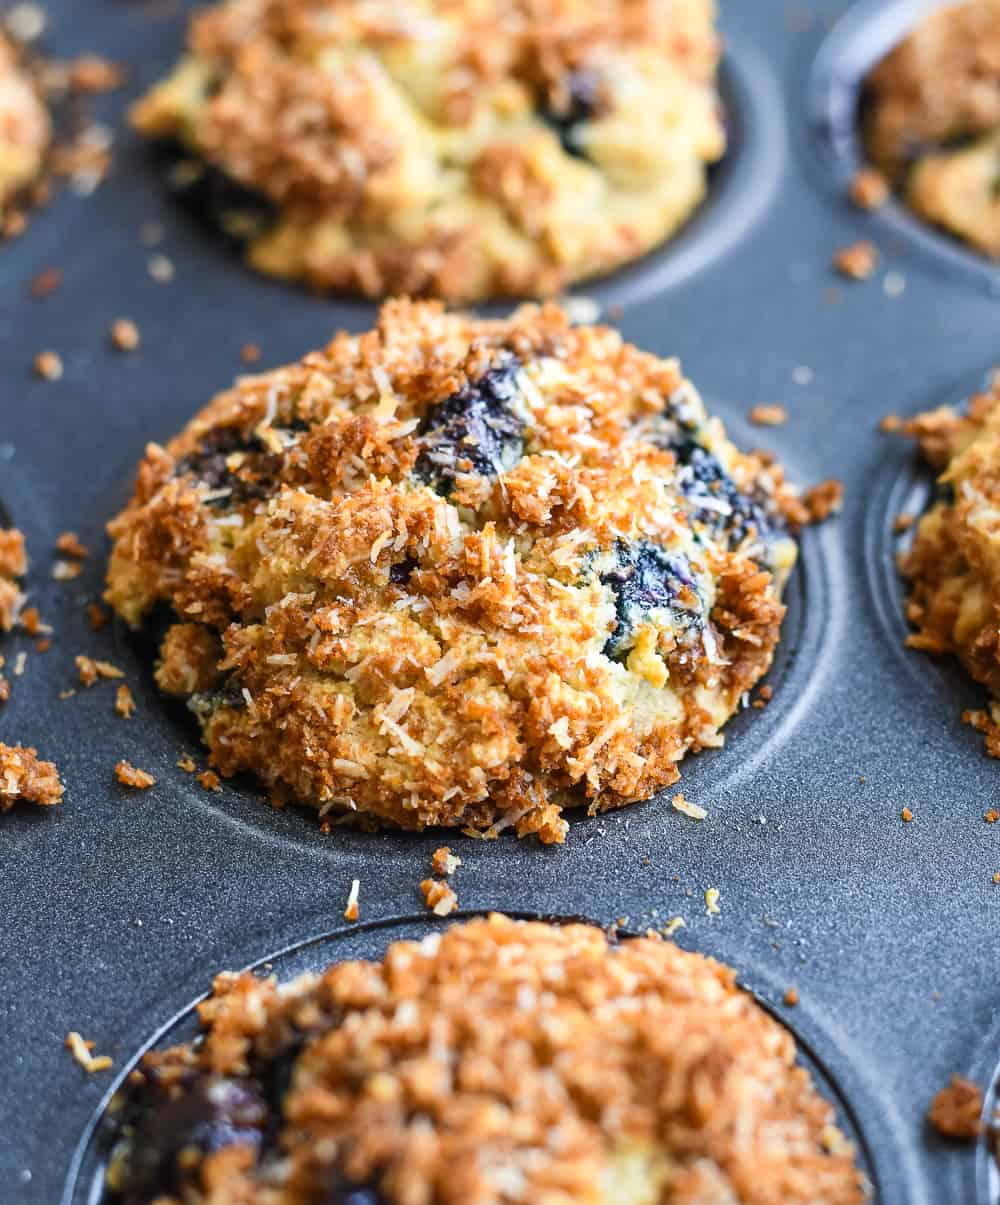 Paleo Blueberry Muffins close up in pan